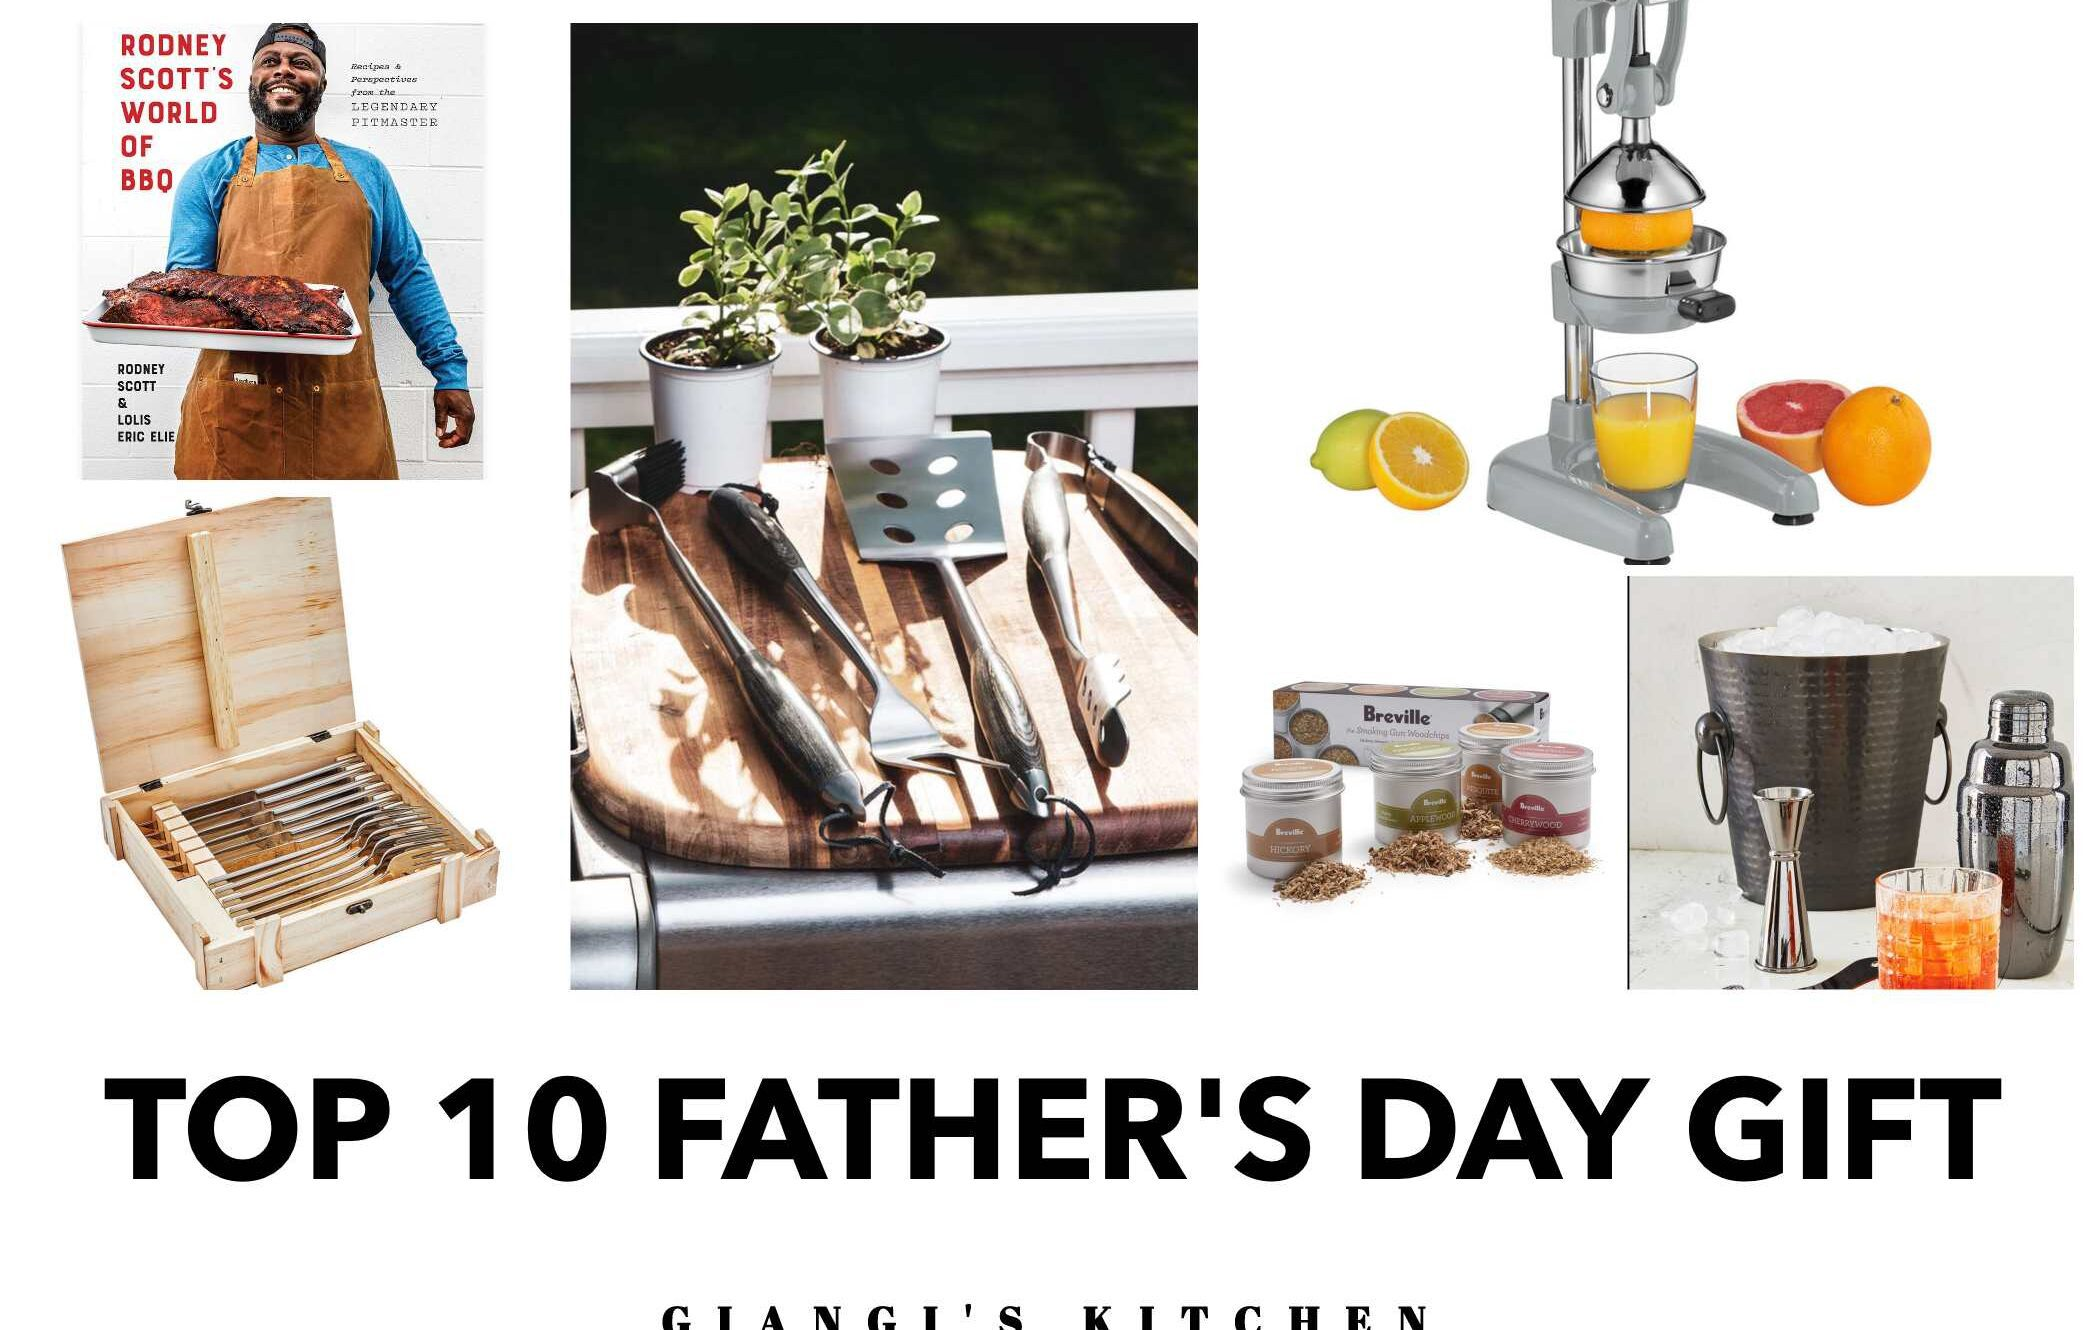 Top 10 Father's Day Gifts